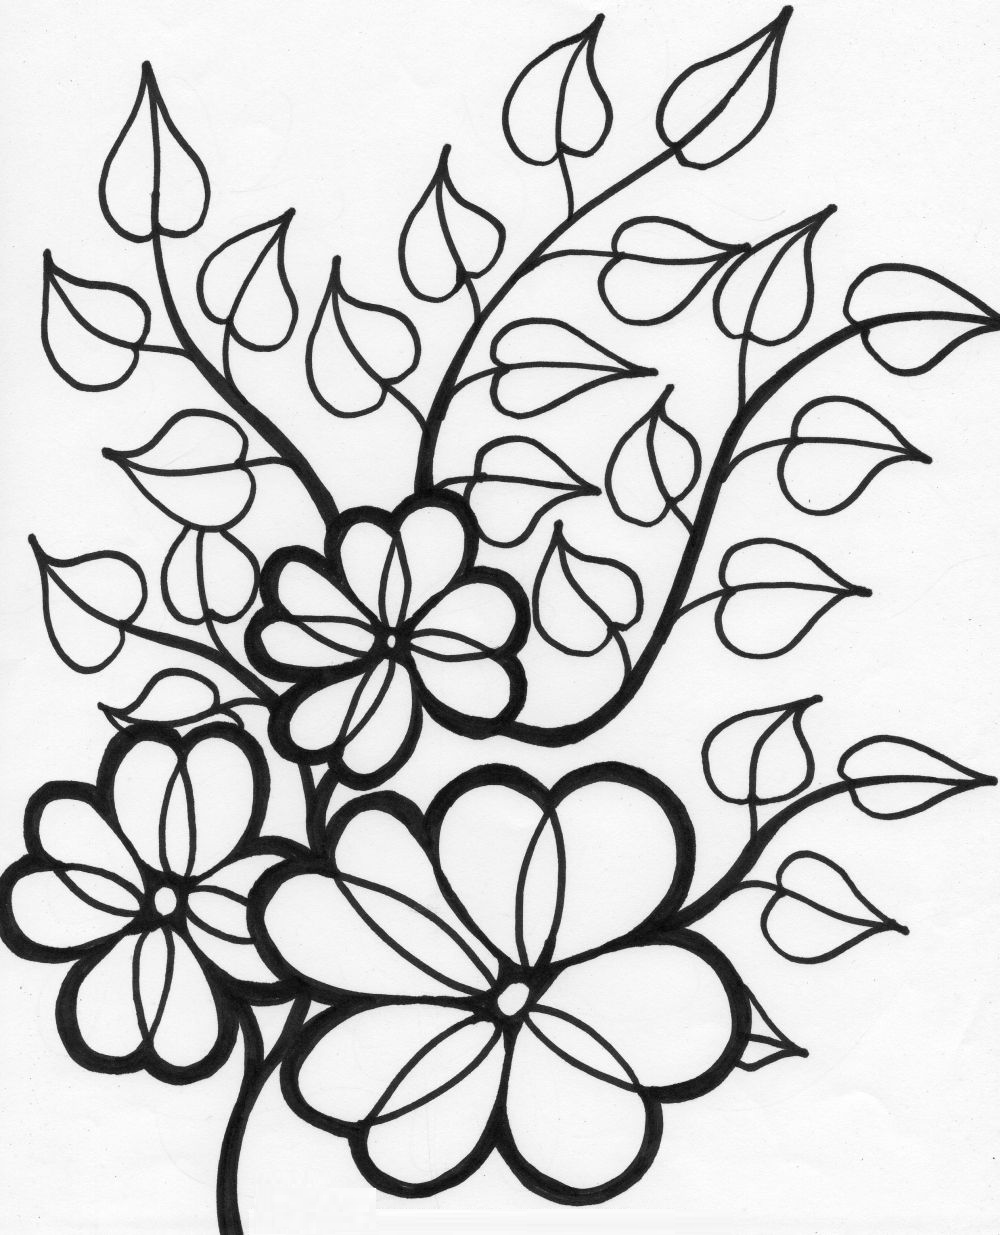 pictures of flowers to color lily coloring pages to download and print for free color pictures to flowers of